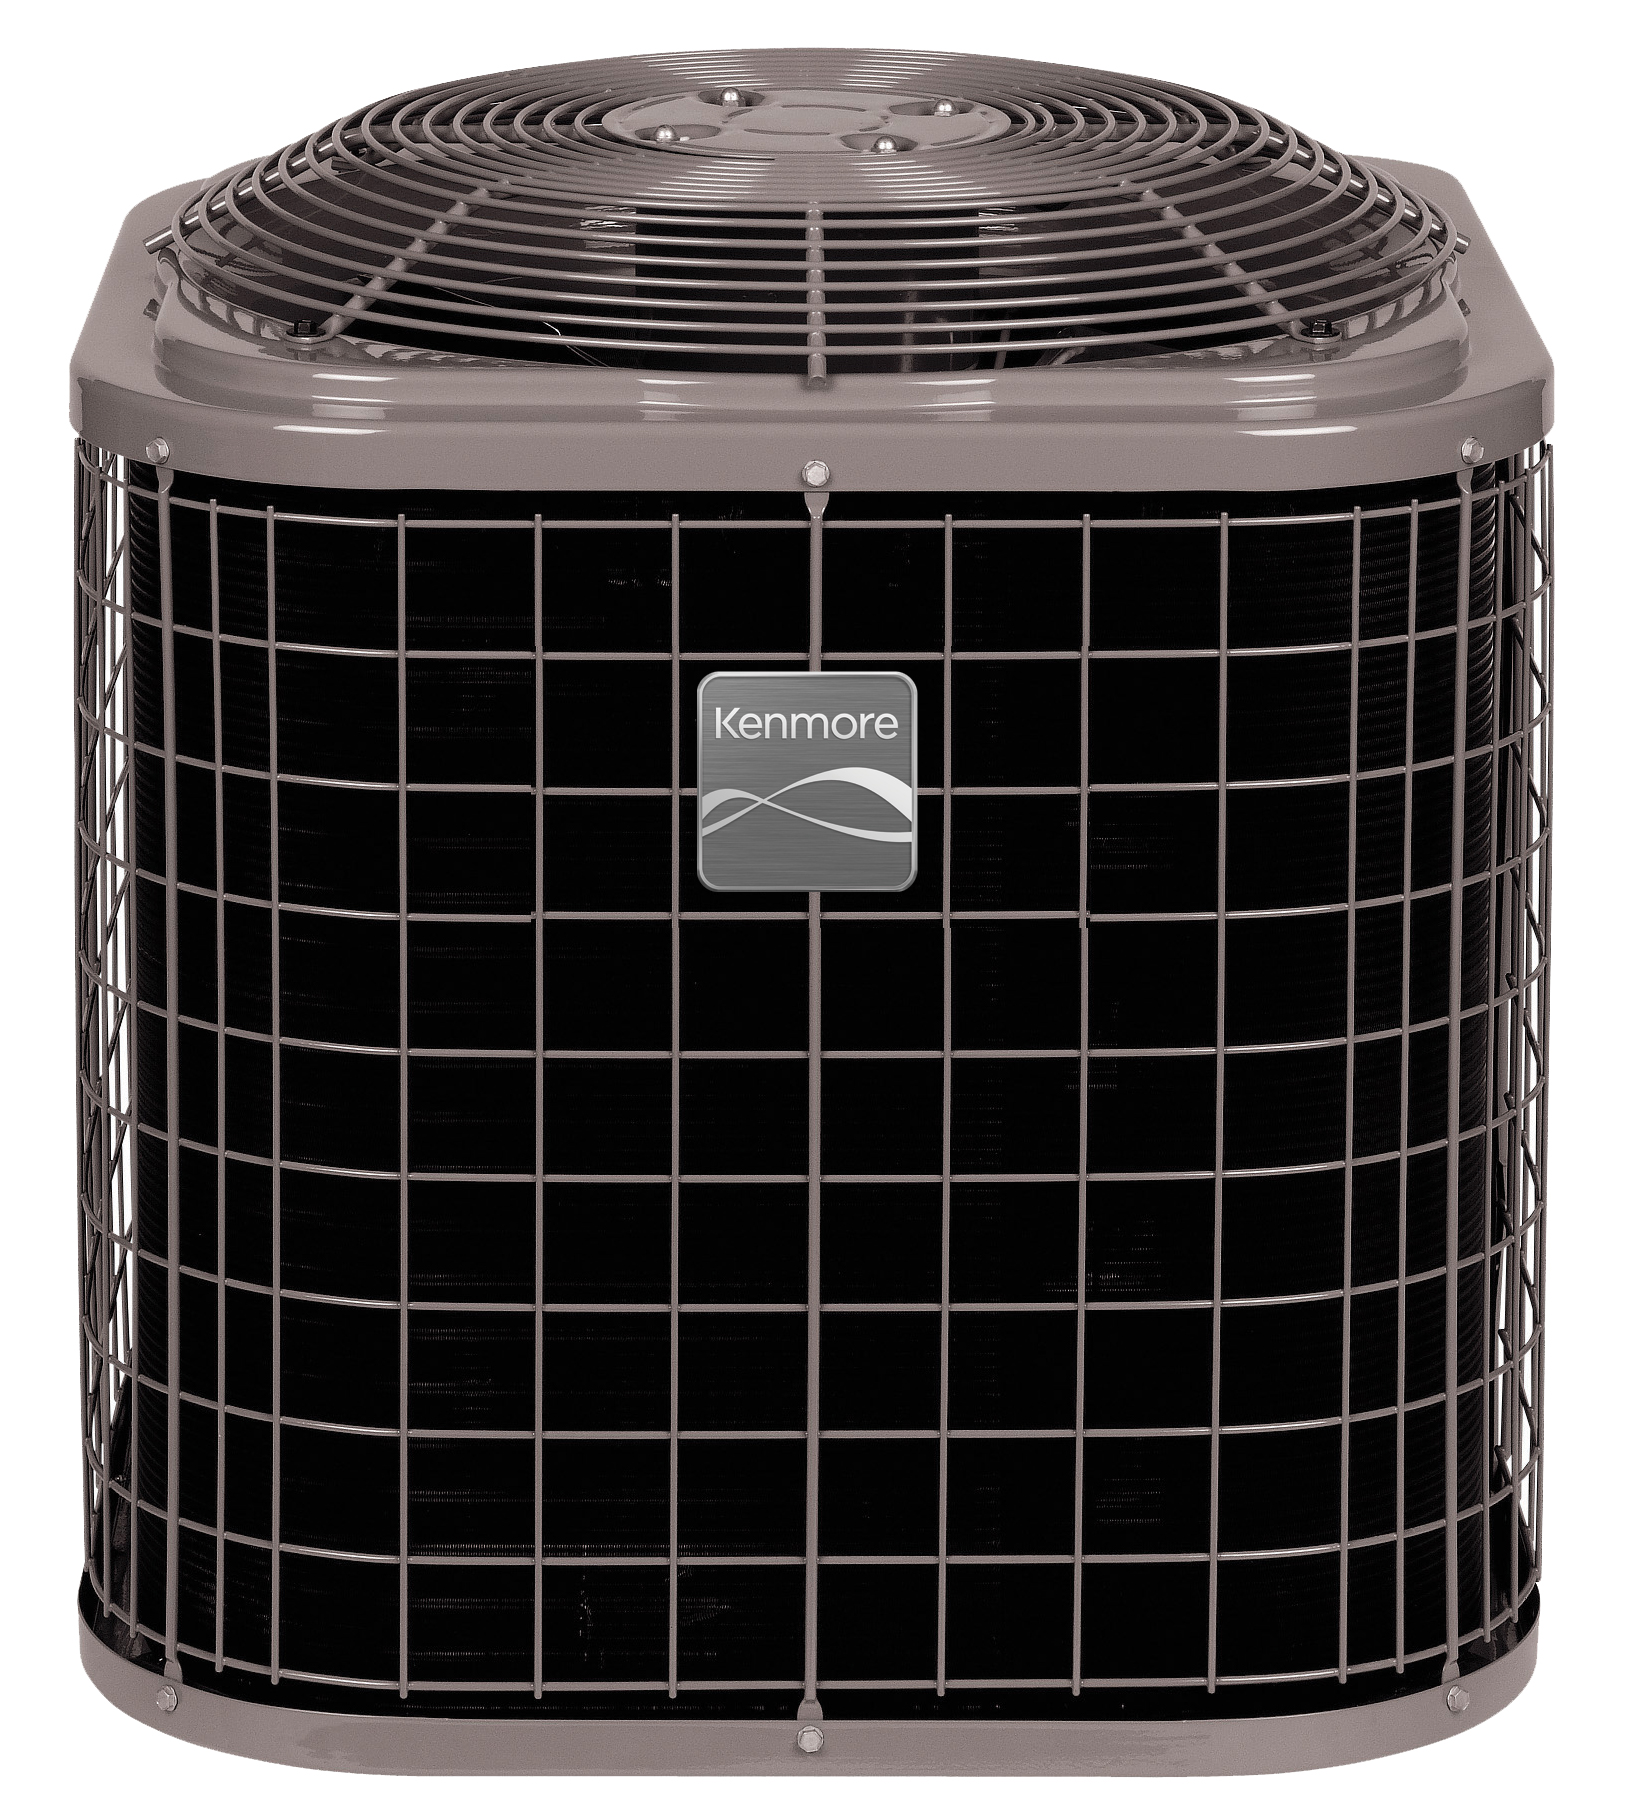 Sears cooling system - different models